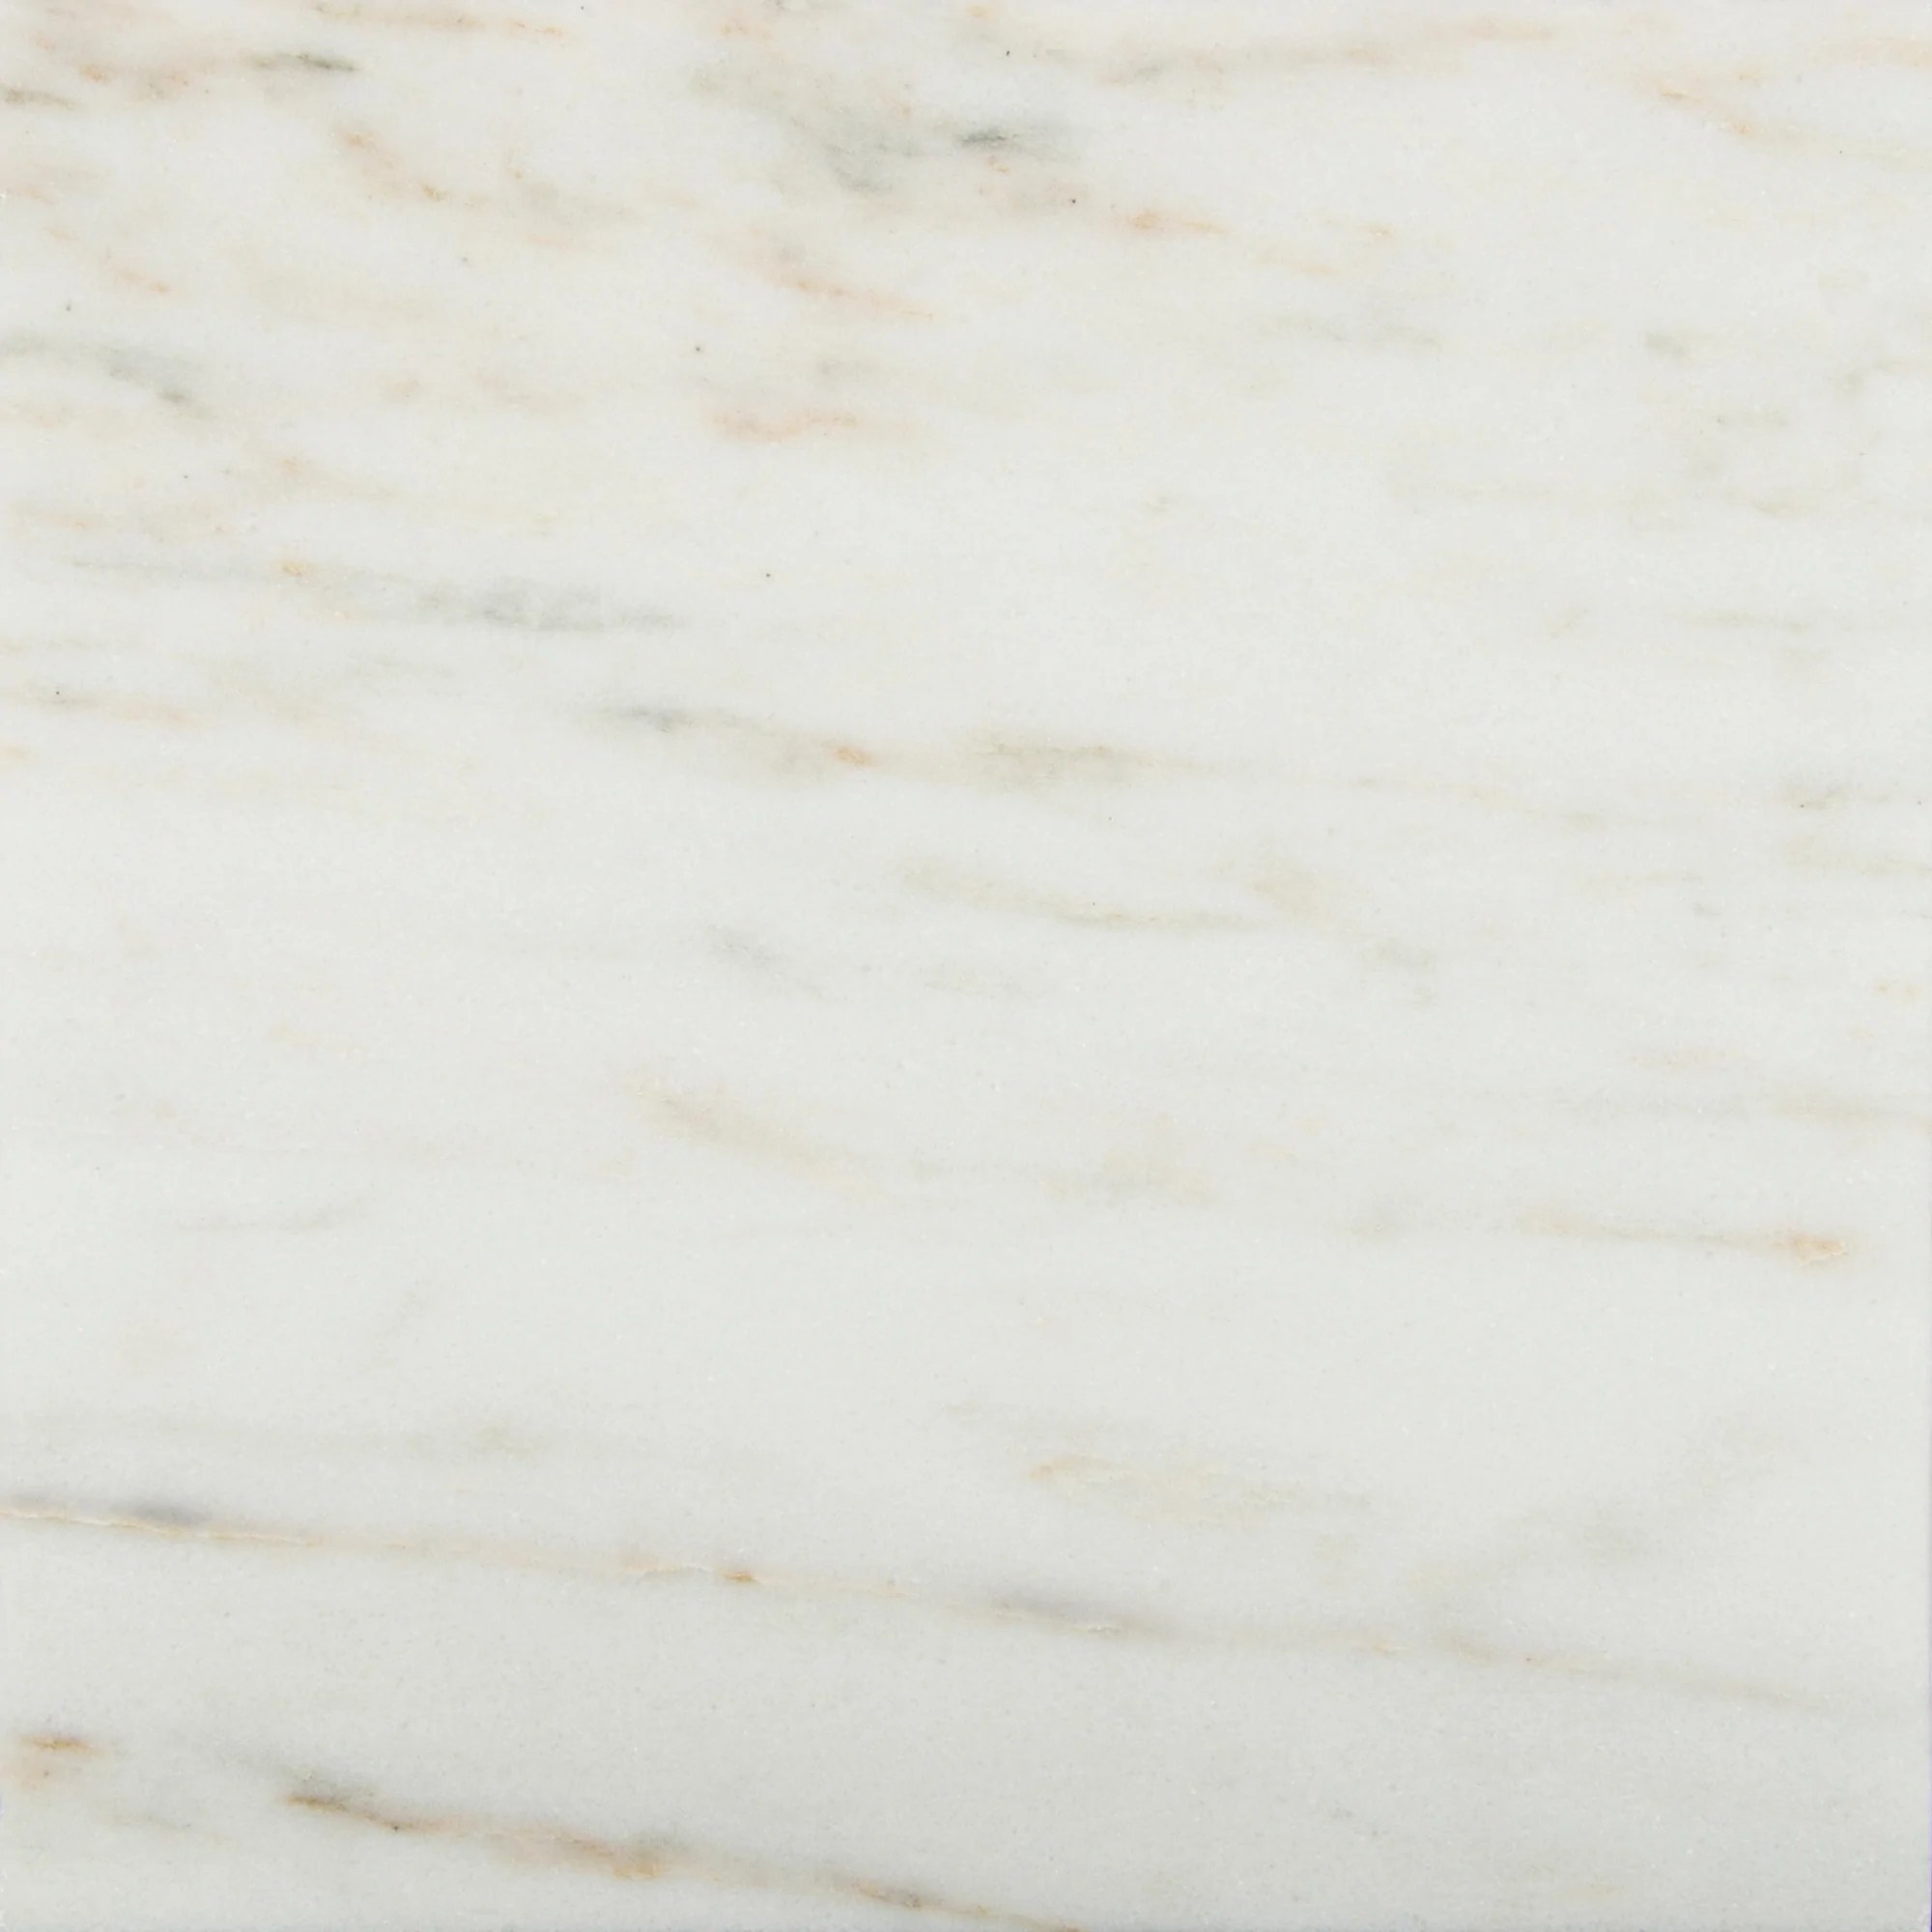 danby imperial marble field tile honed 18 x 18 x 3 8 stone artistic tile